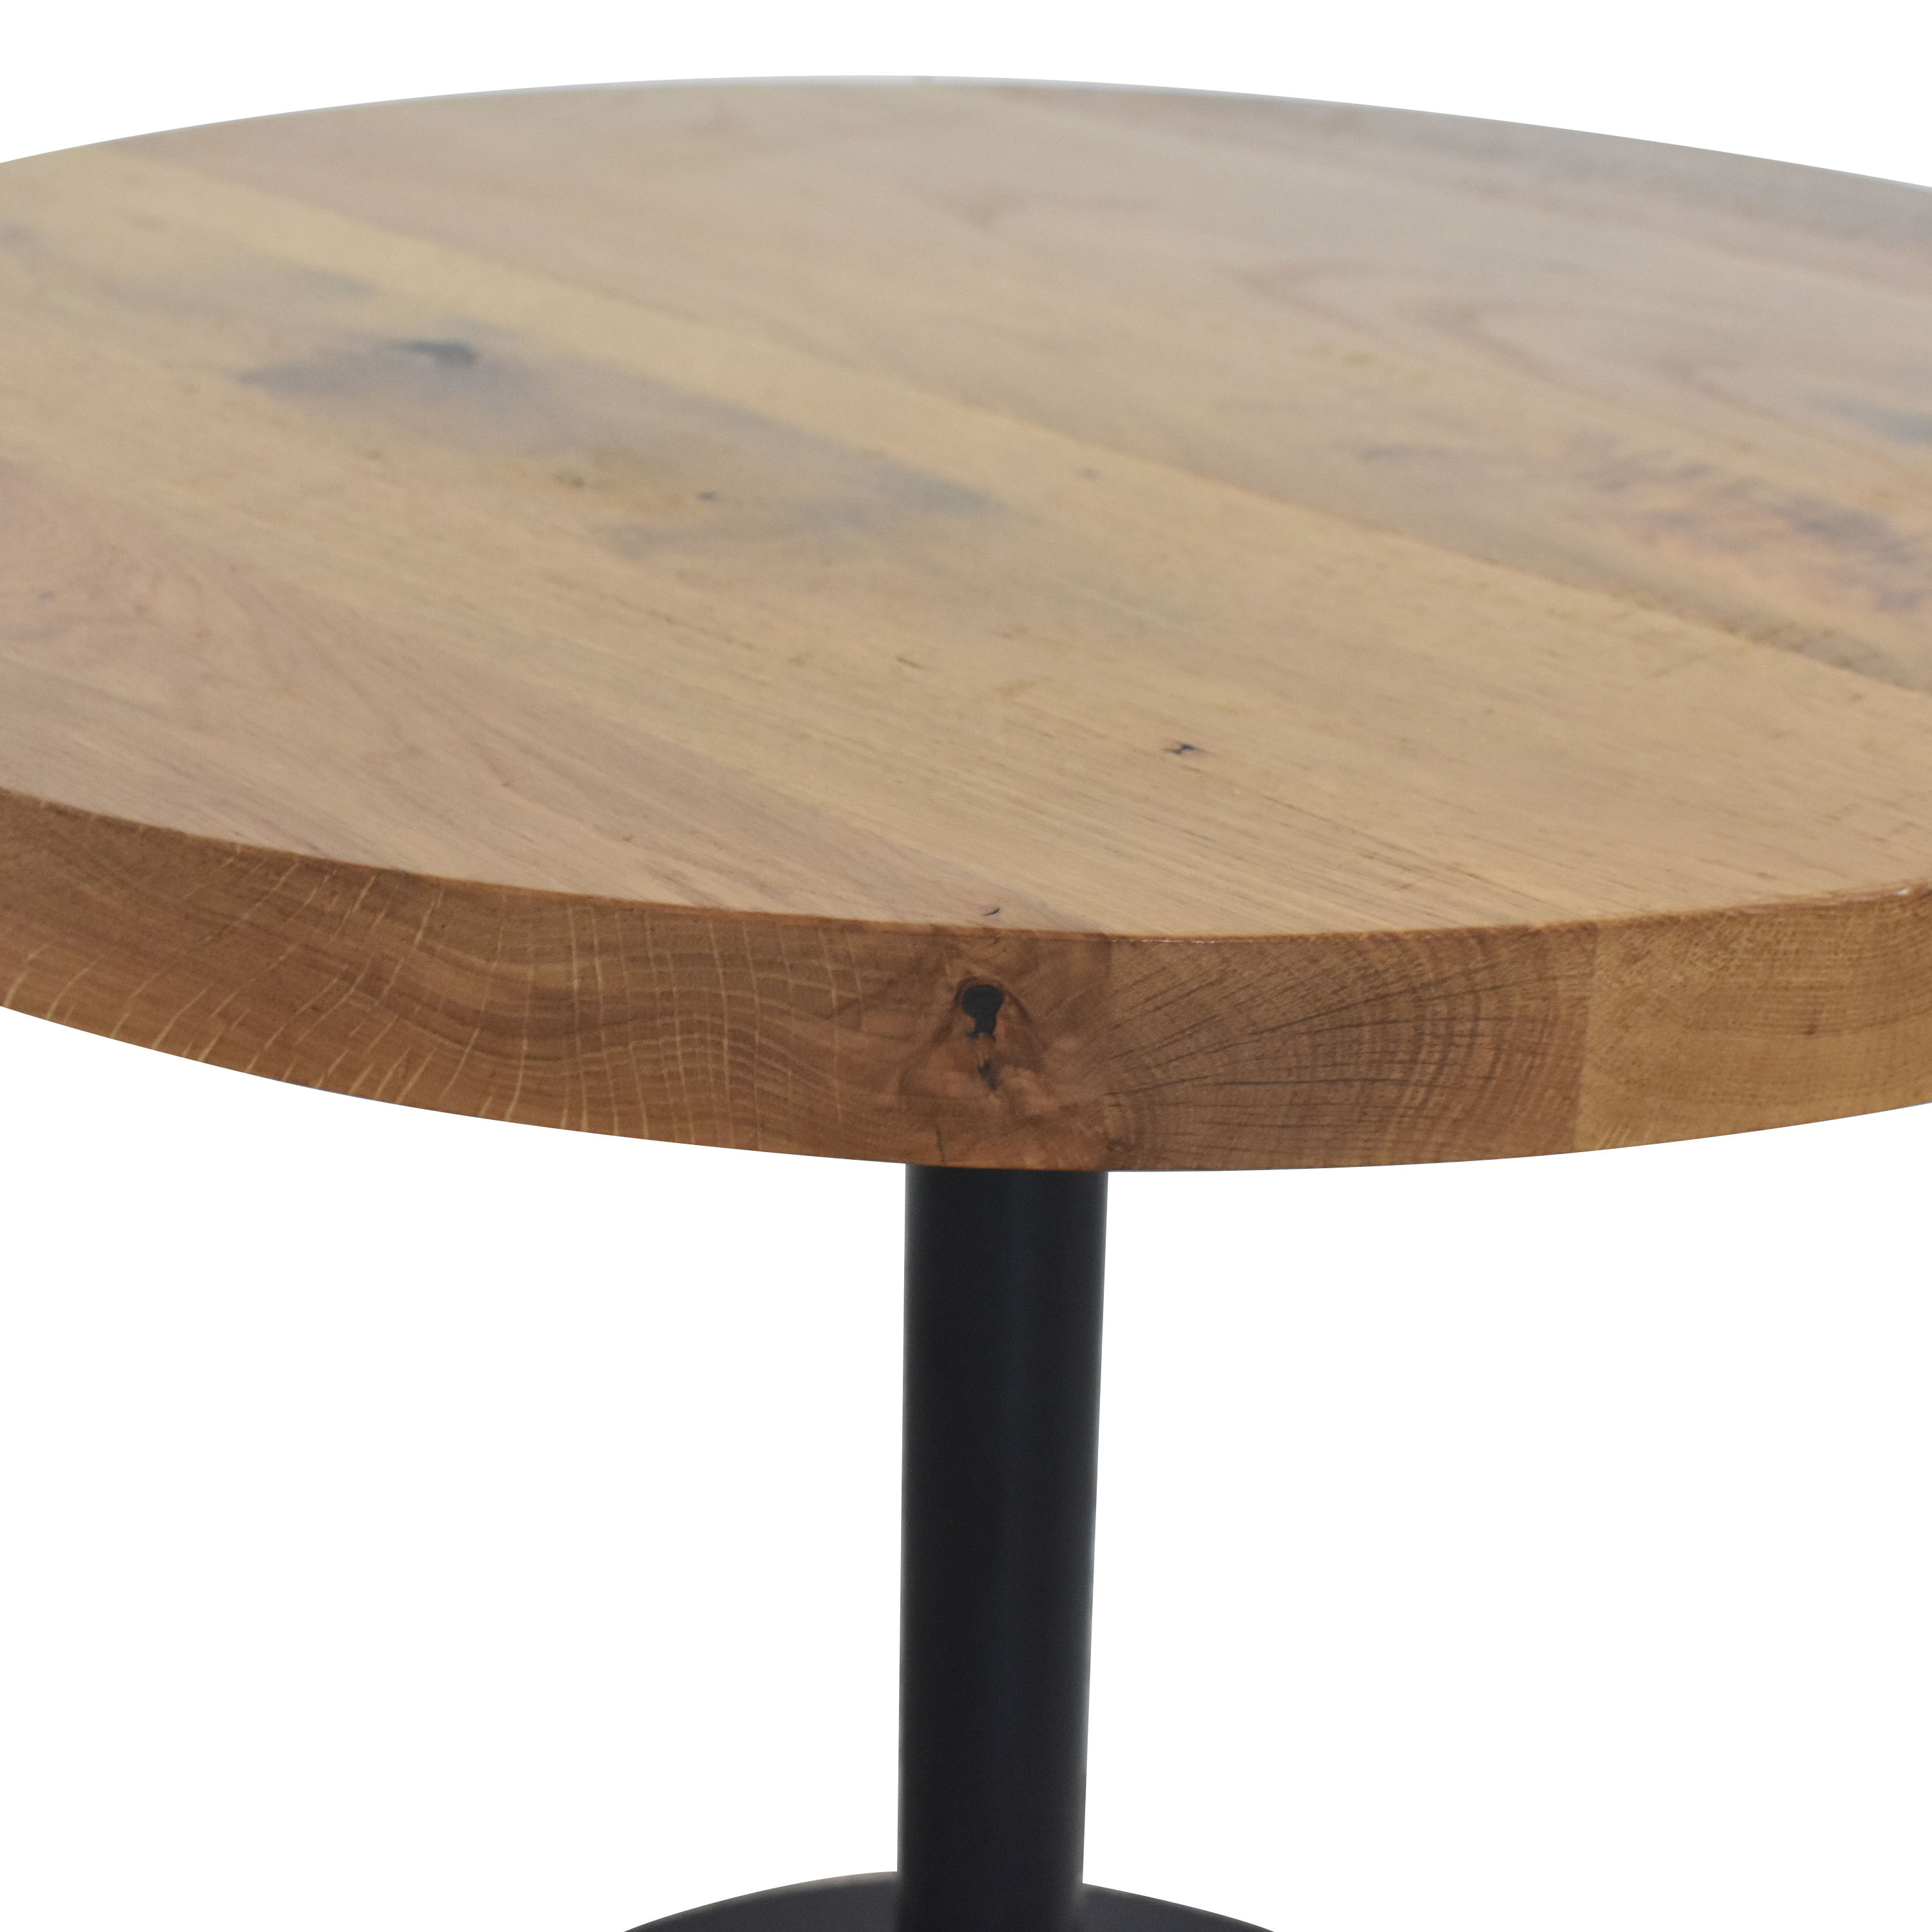 Crow Works Crow Works Round Base Table